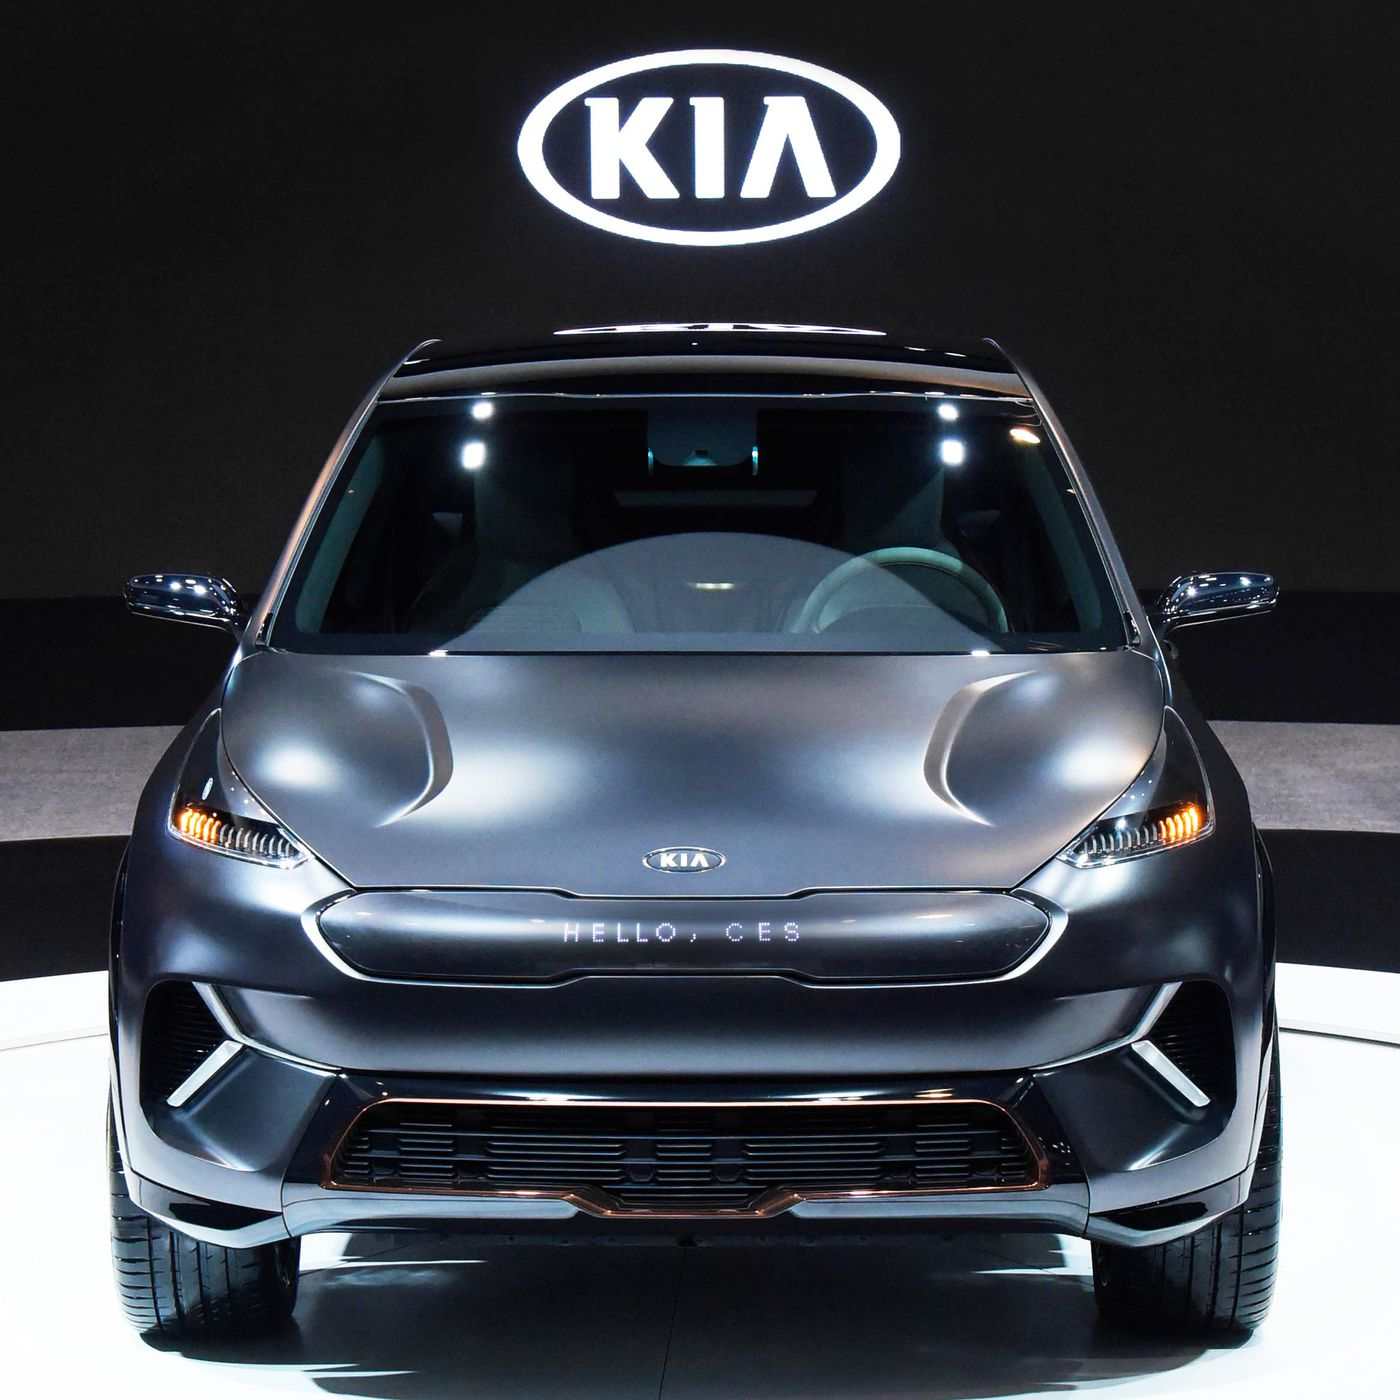 2018 Kia Niro All-electric Model >> Kia Niro Ev Is A Thinly Disguised Concept With 238 Miles Of Range